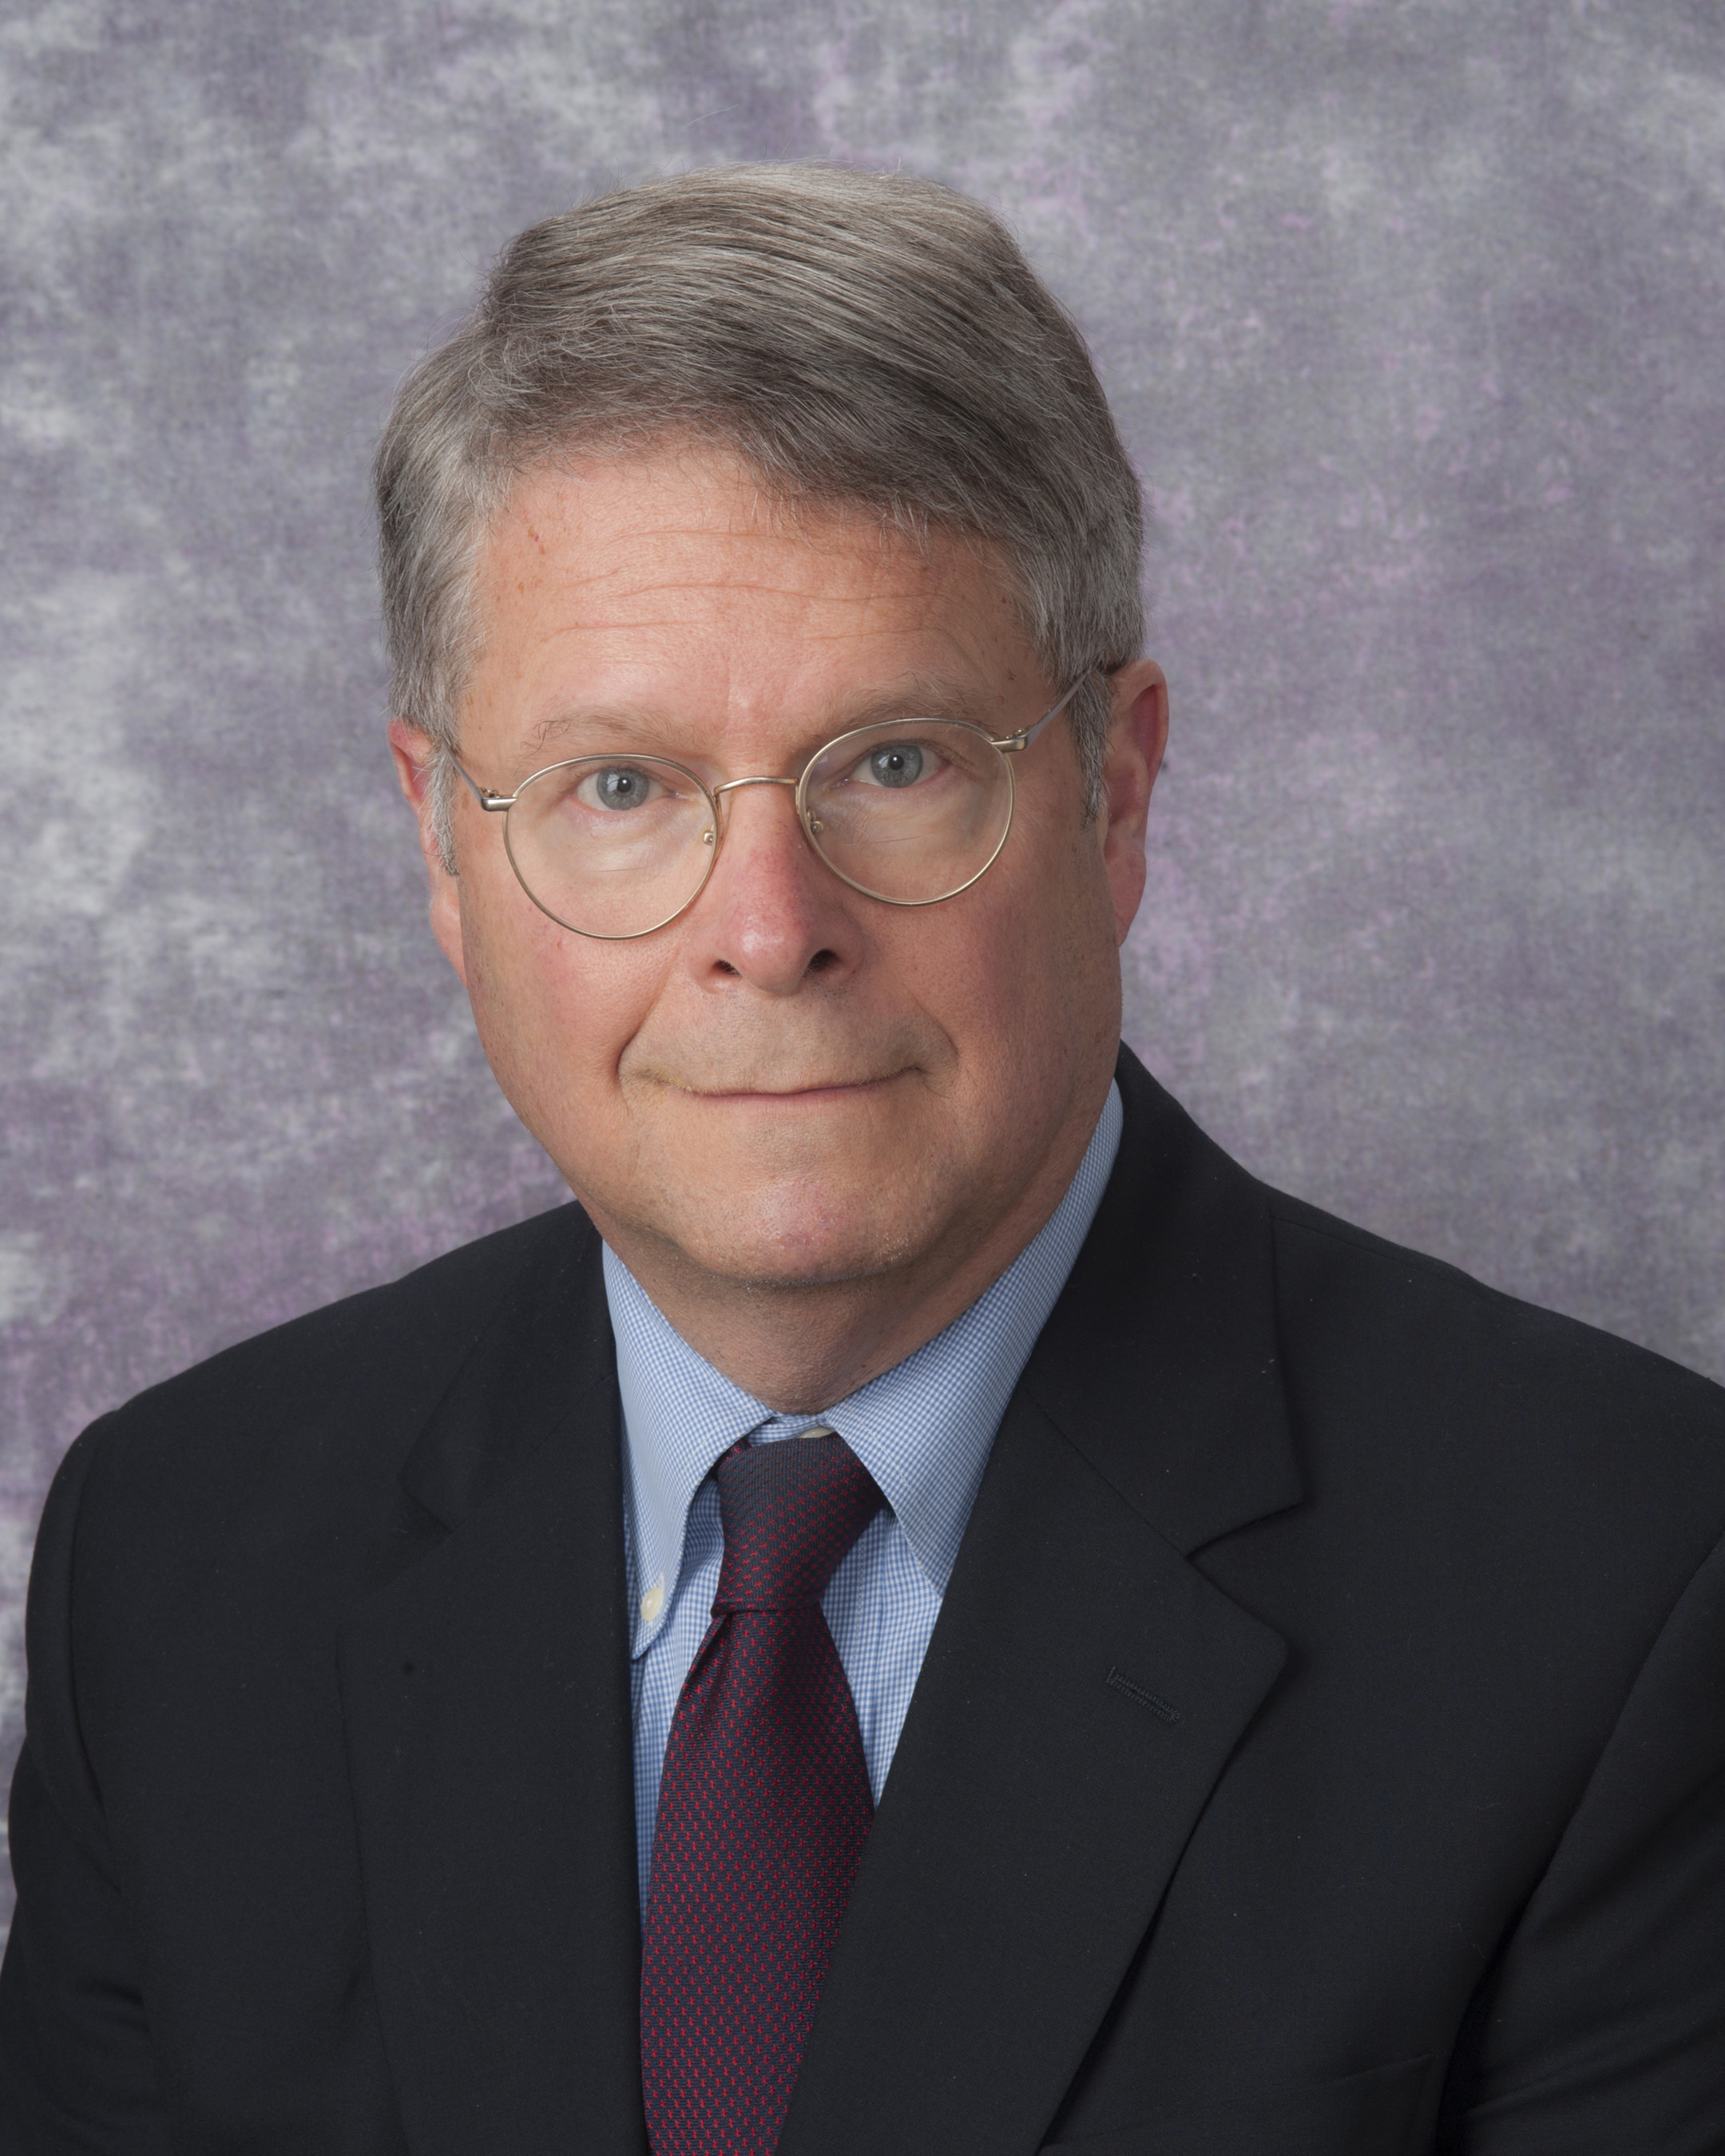 2016 Pardes Prize Recipient Charles F. Reynolds, III, M.D.